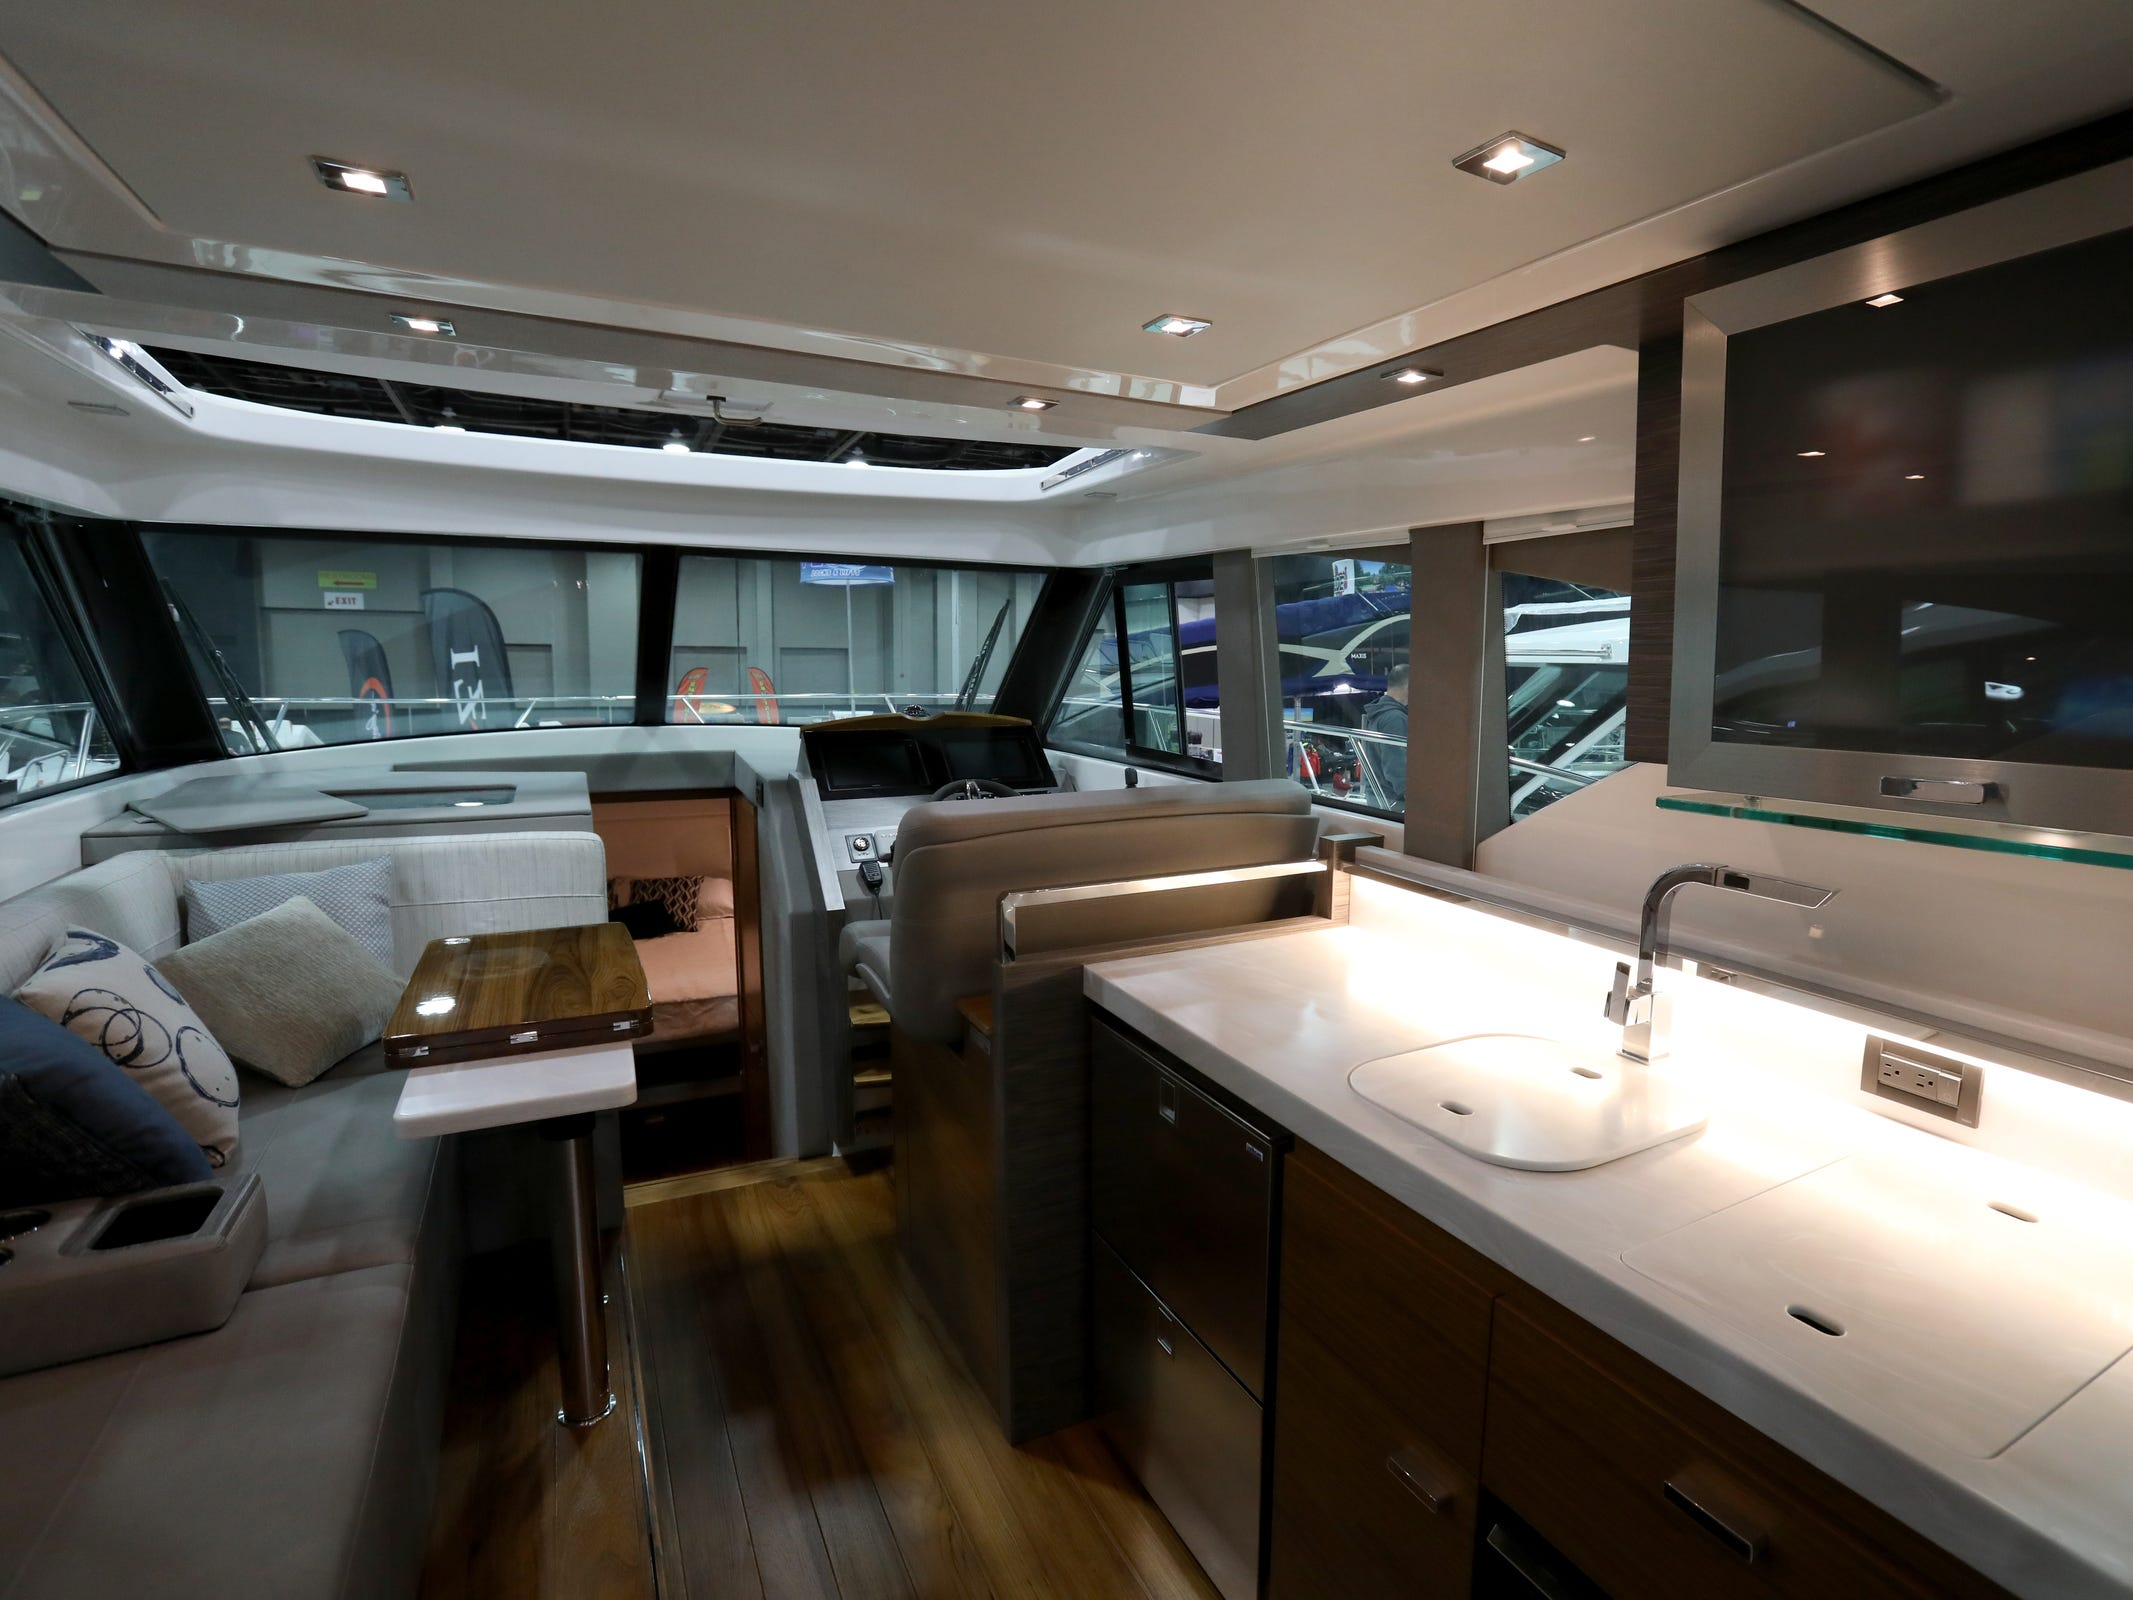 A look at the inside sitting space, kitchen area of the $695,000 Tiara 39 foot Coupe at the Skipper Buds display during the week long Detroit Boat Show at Cobo Center in Detroit on Saturday, February 16, 2019.